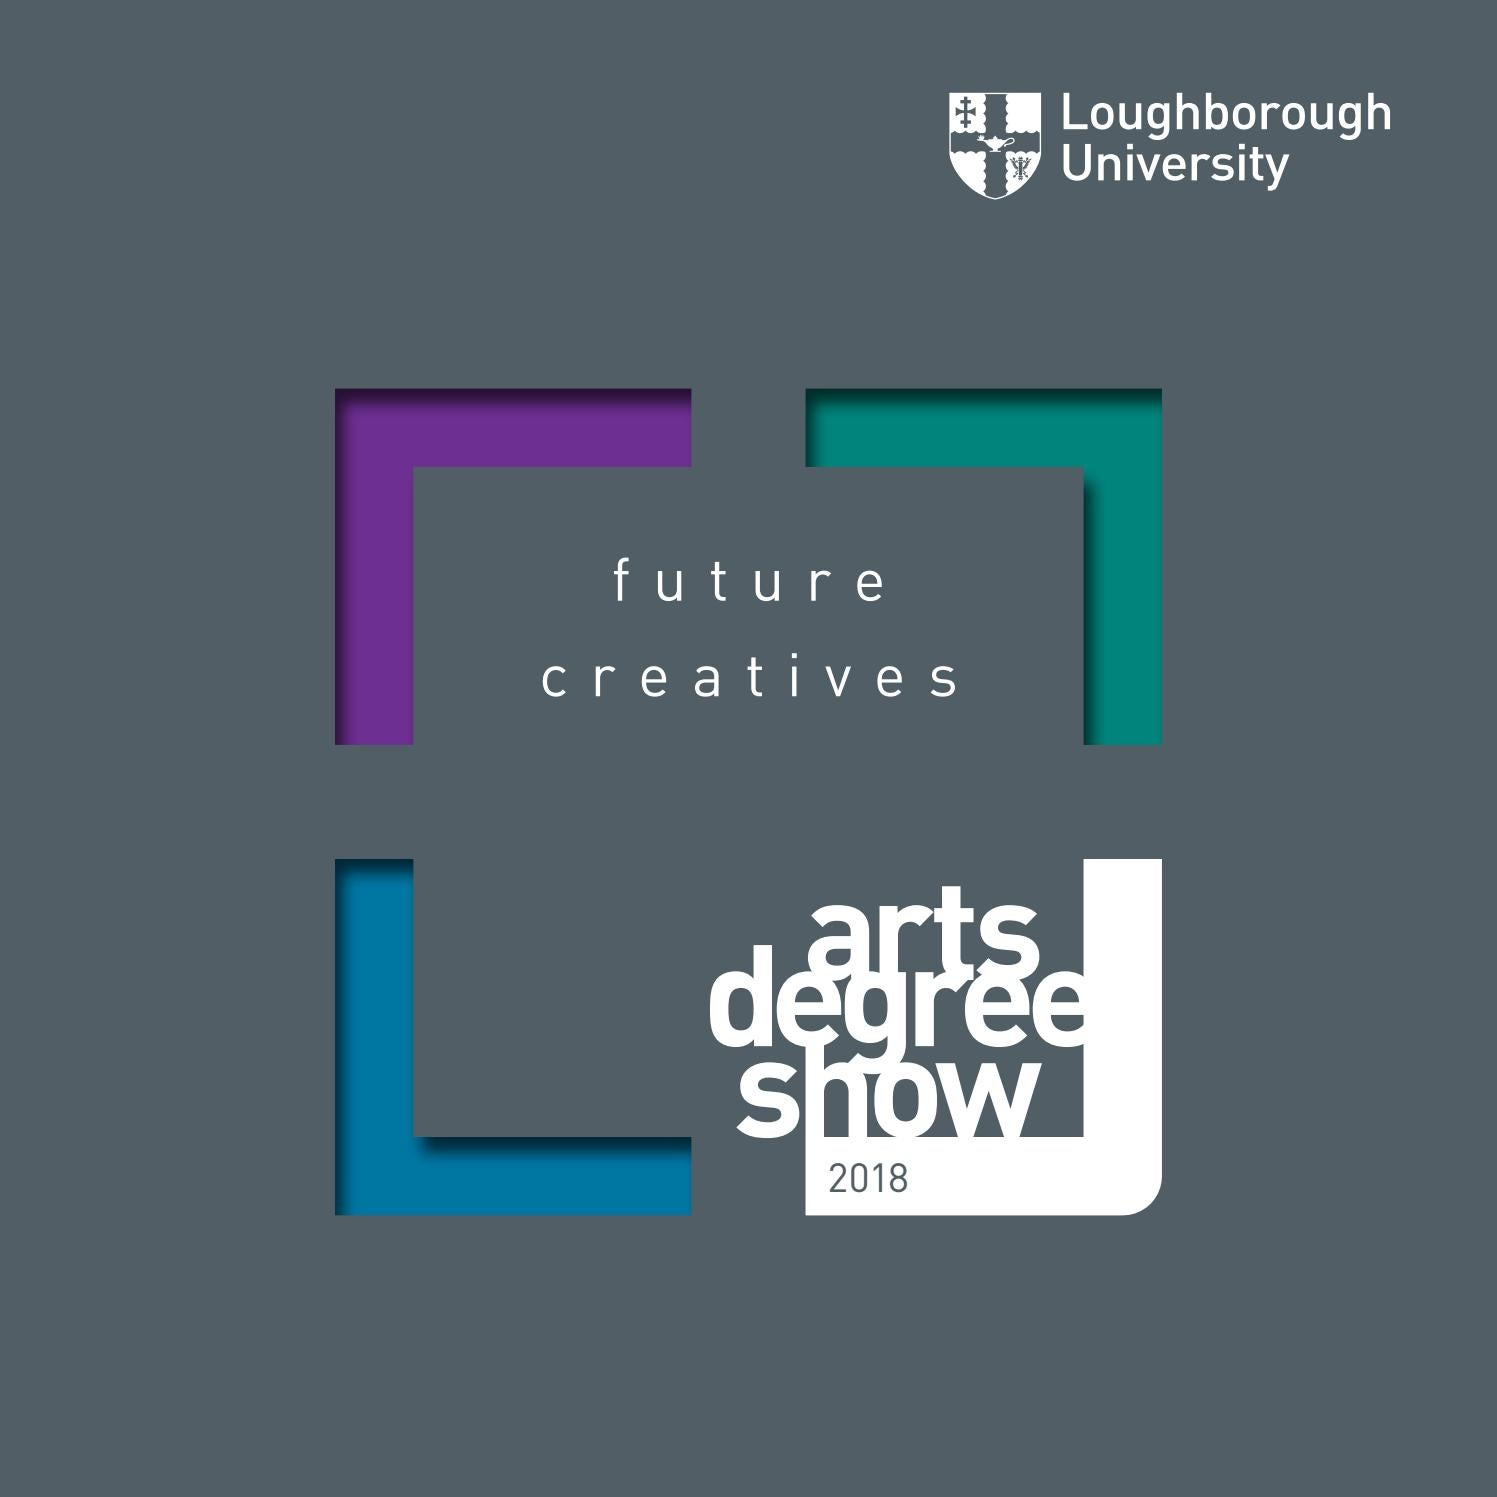 740e3301cc60ef School of the Arts Degree Catalogue 2018 by Loughborough University - issuu